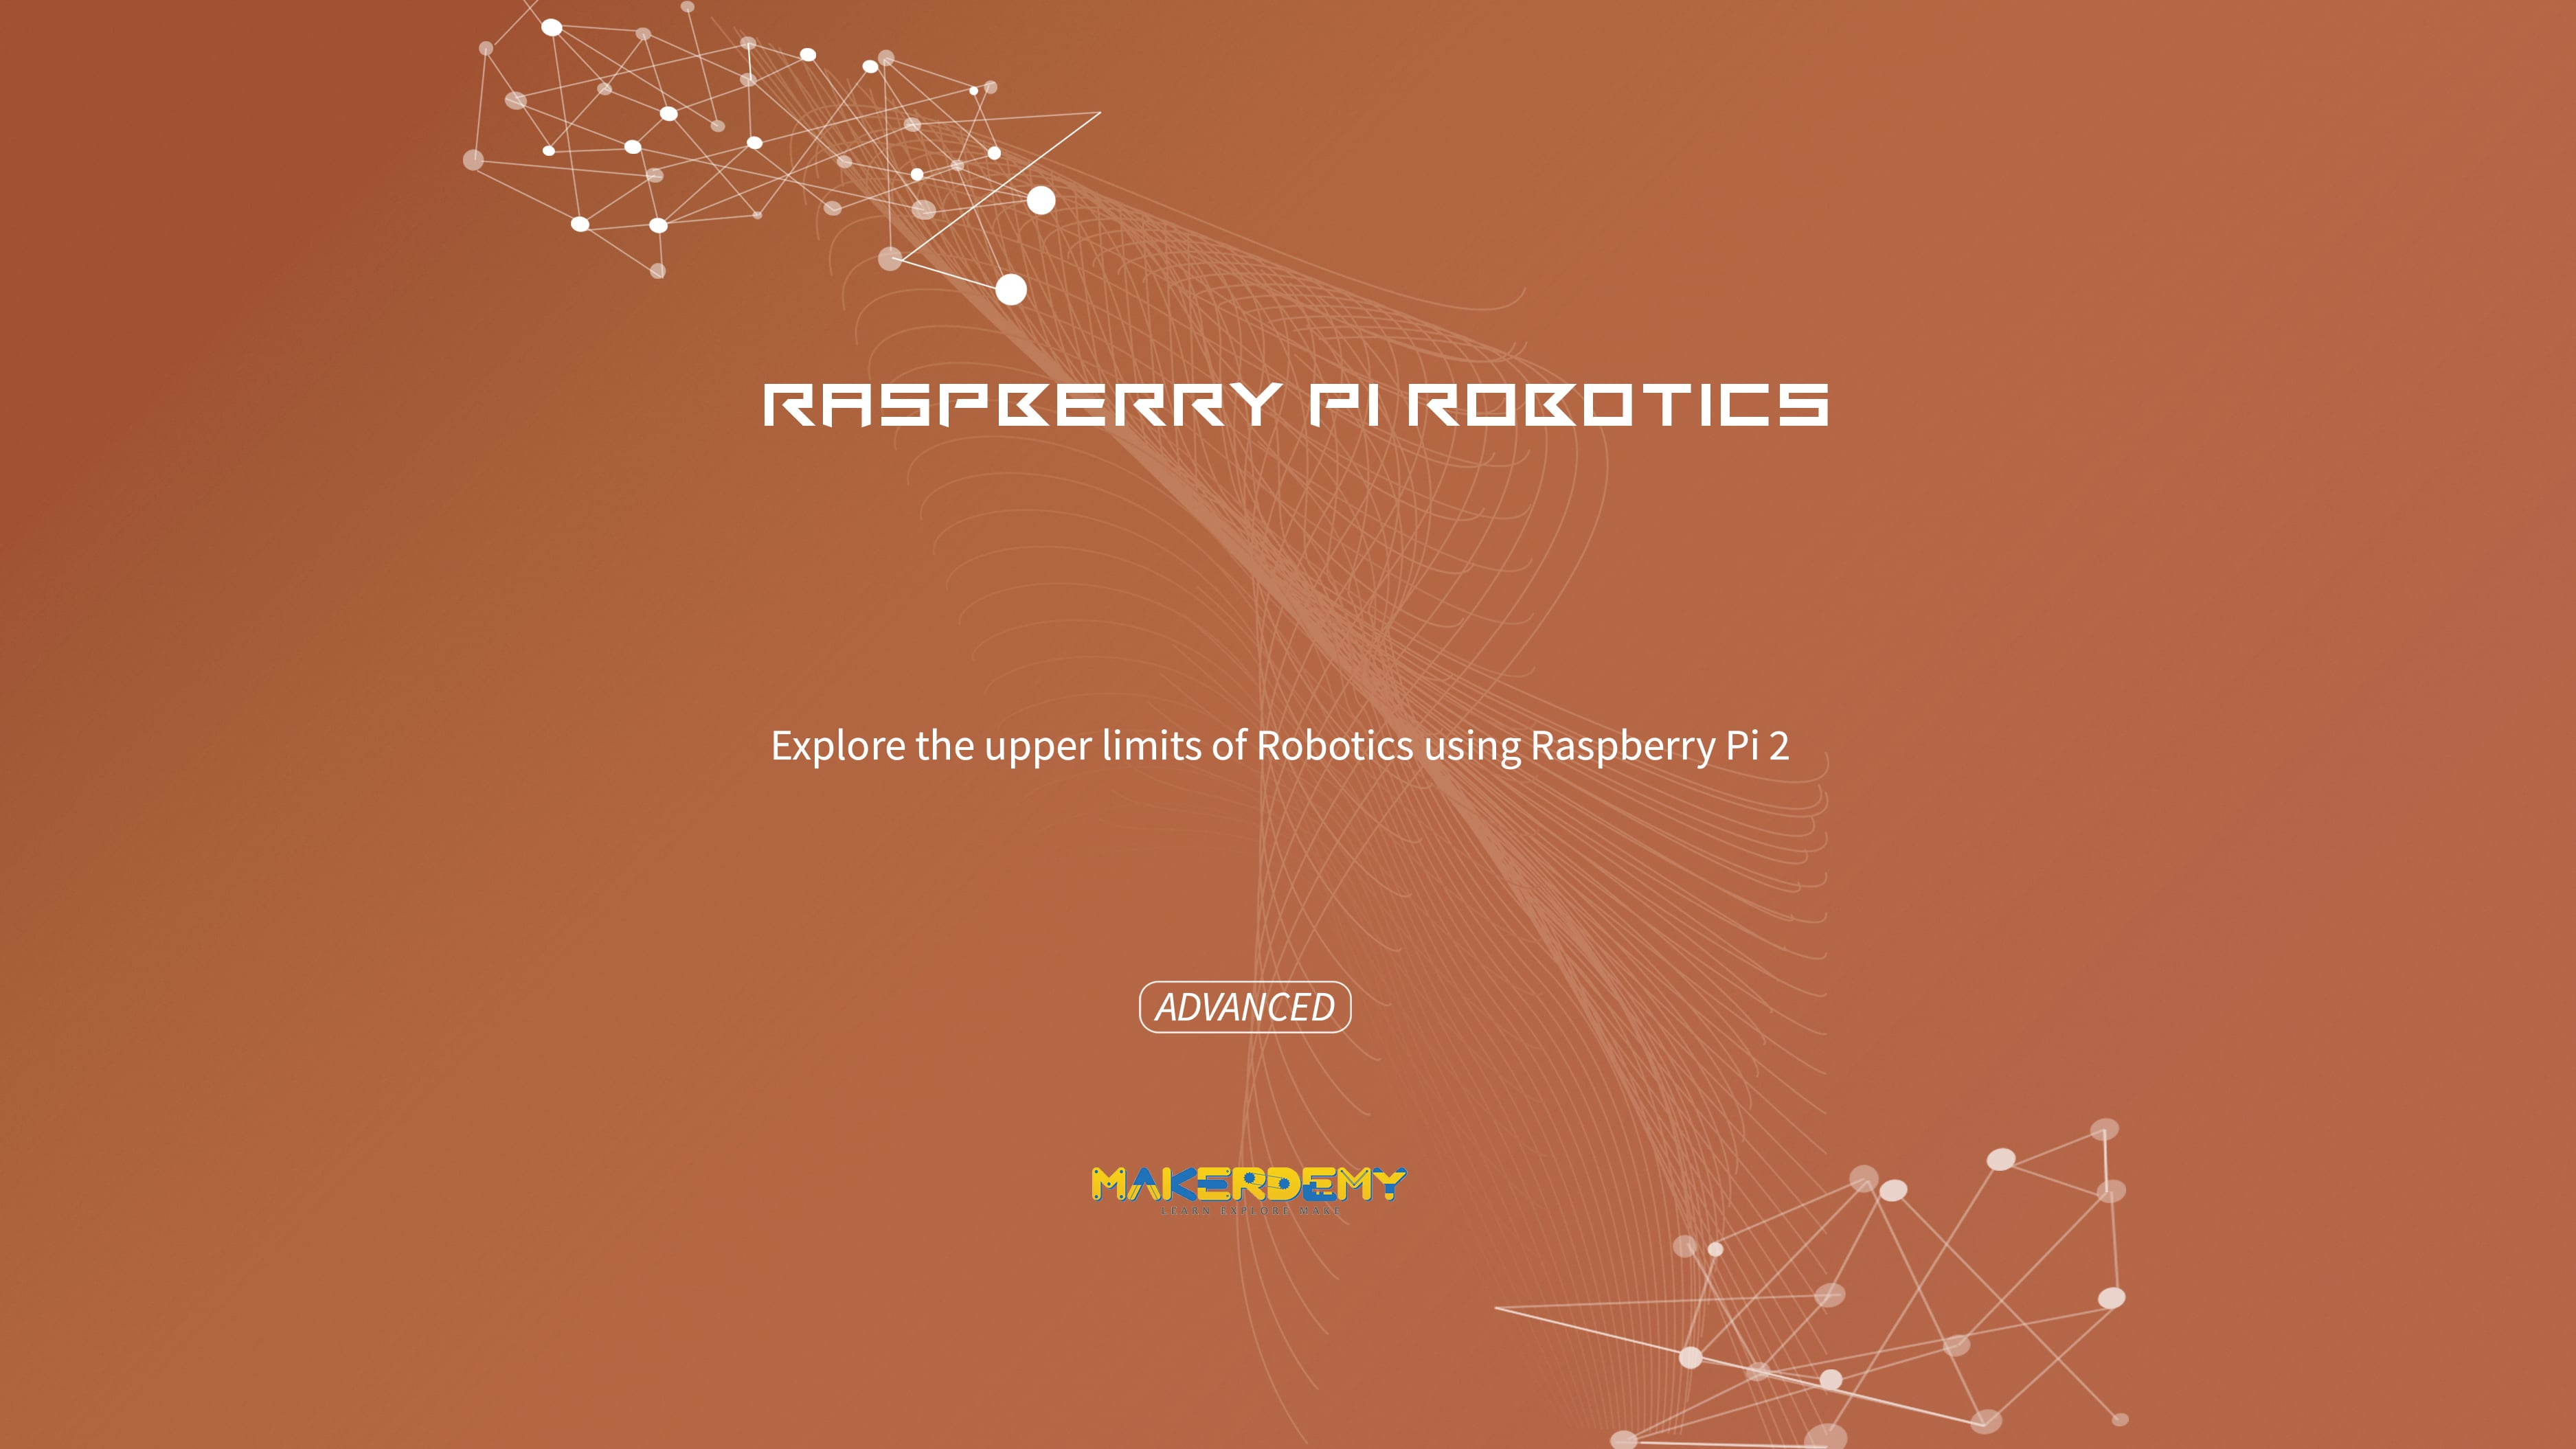 Raspberry Pi Robotics